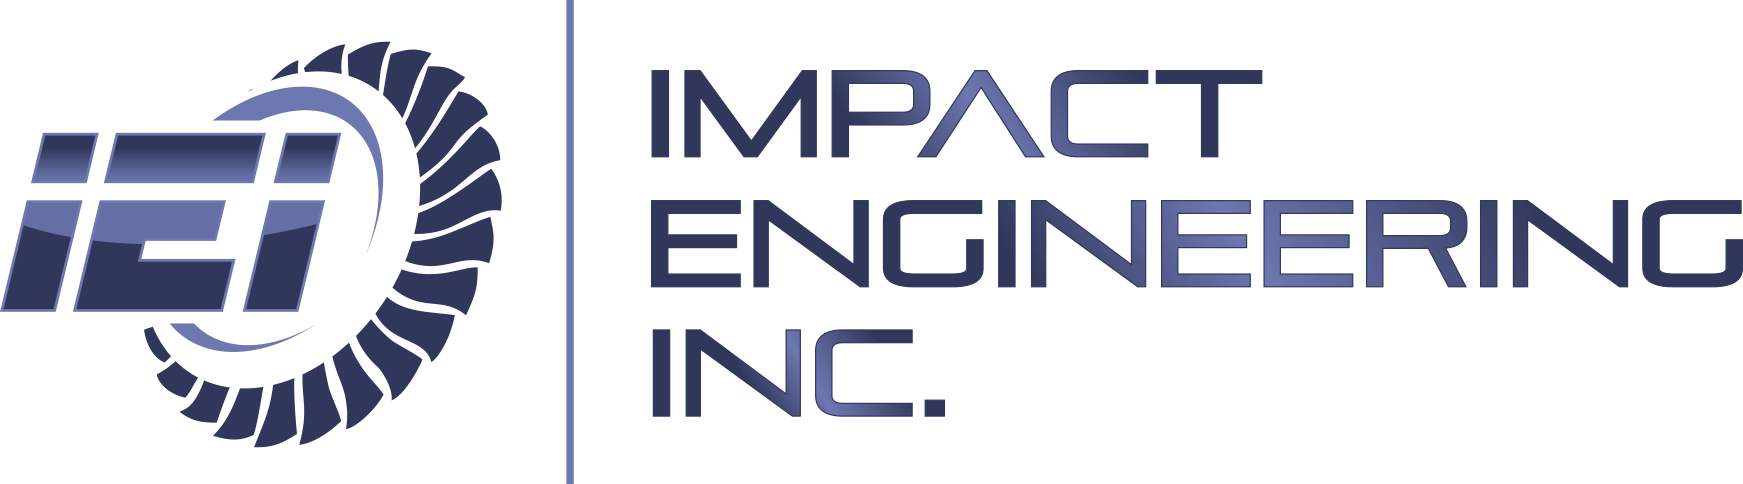 Impact Engineering, Inc.